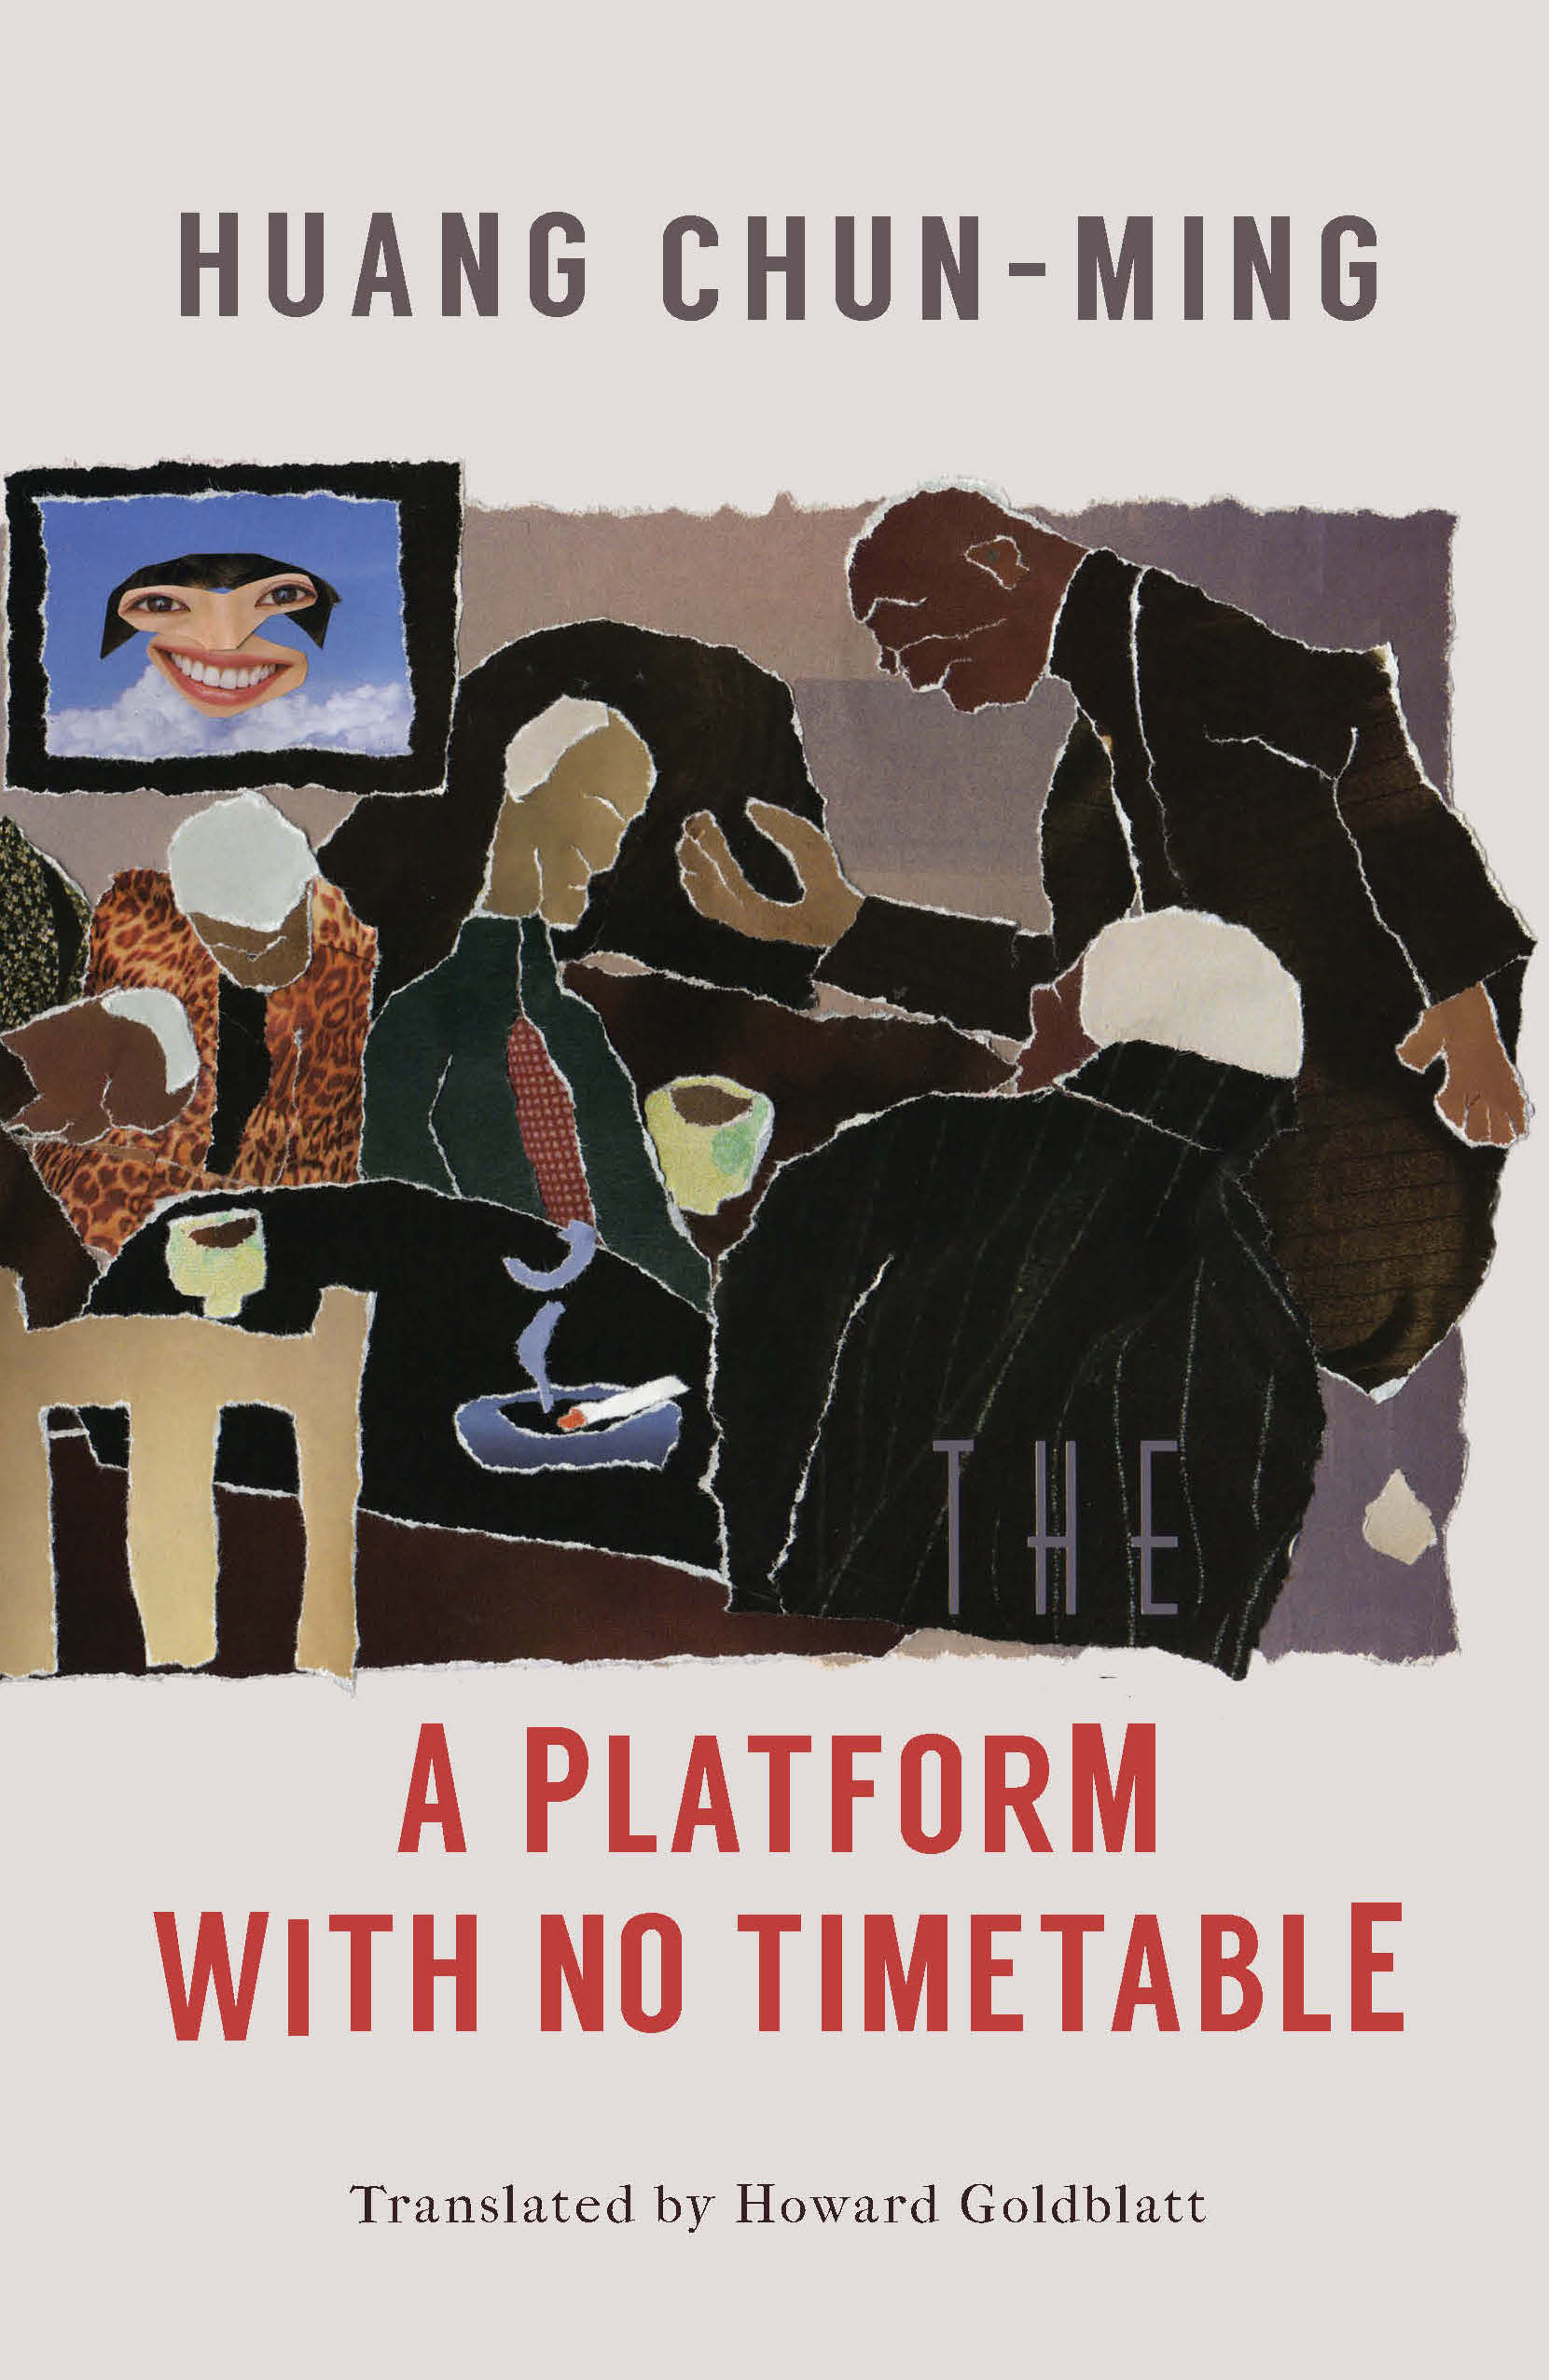 A Platform with No Timetable